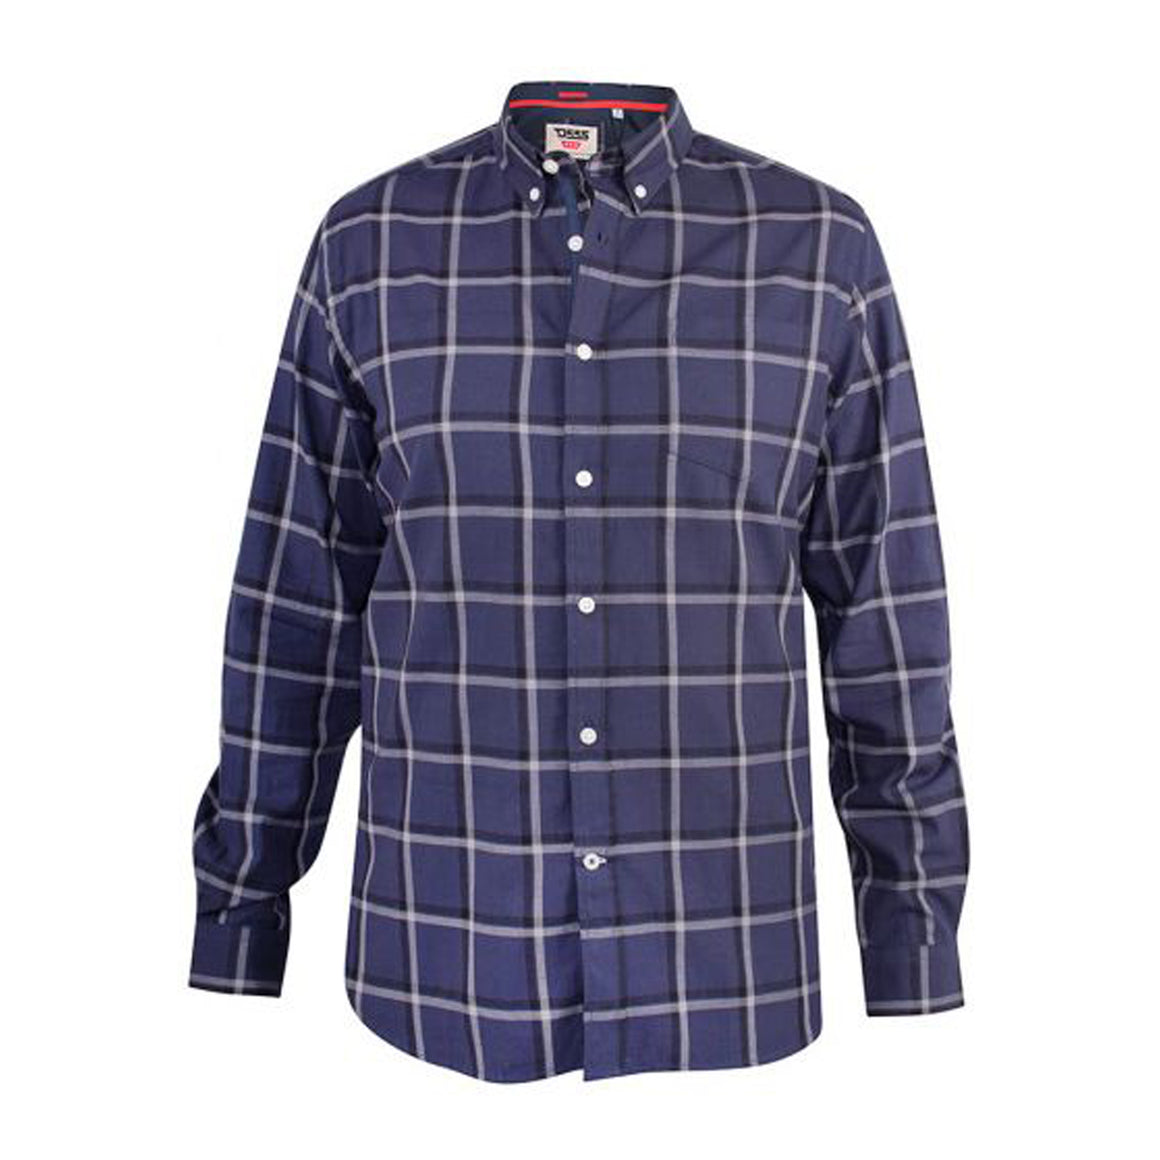 Townsville Long Sleeve Check Shirt for Men in Navy